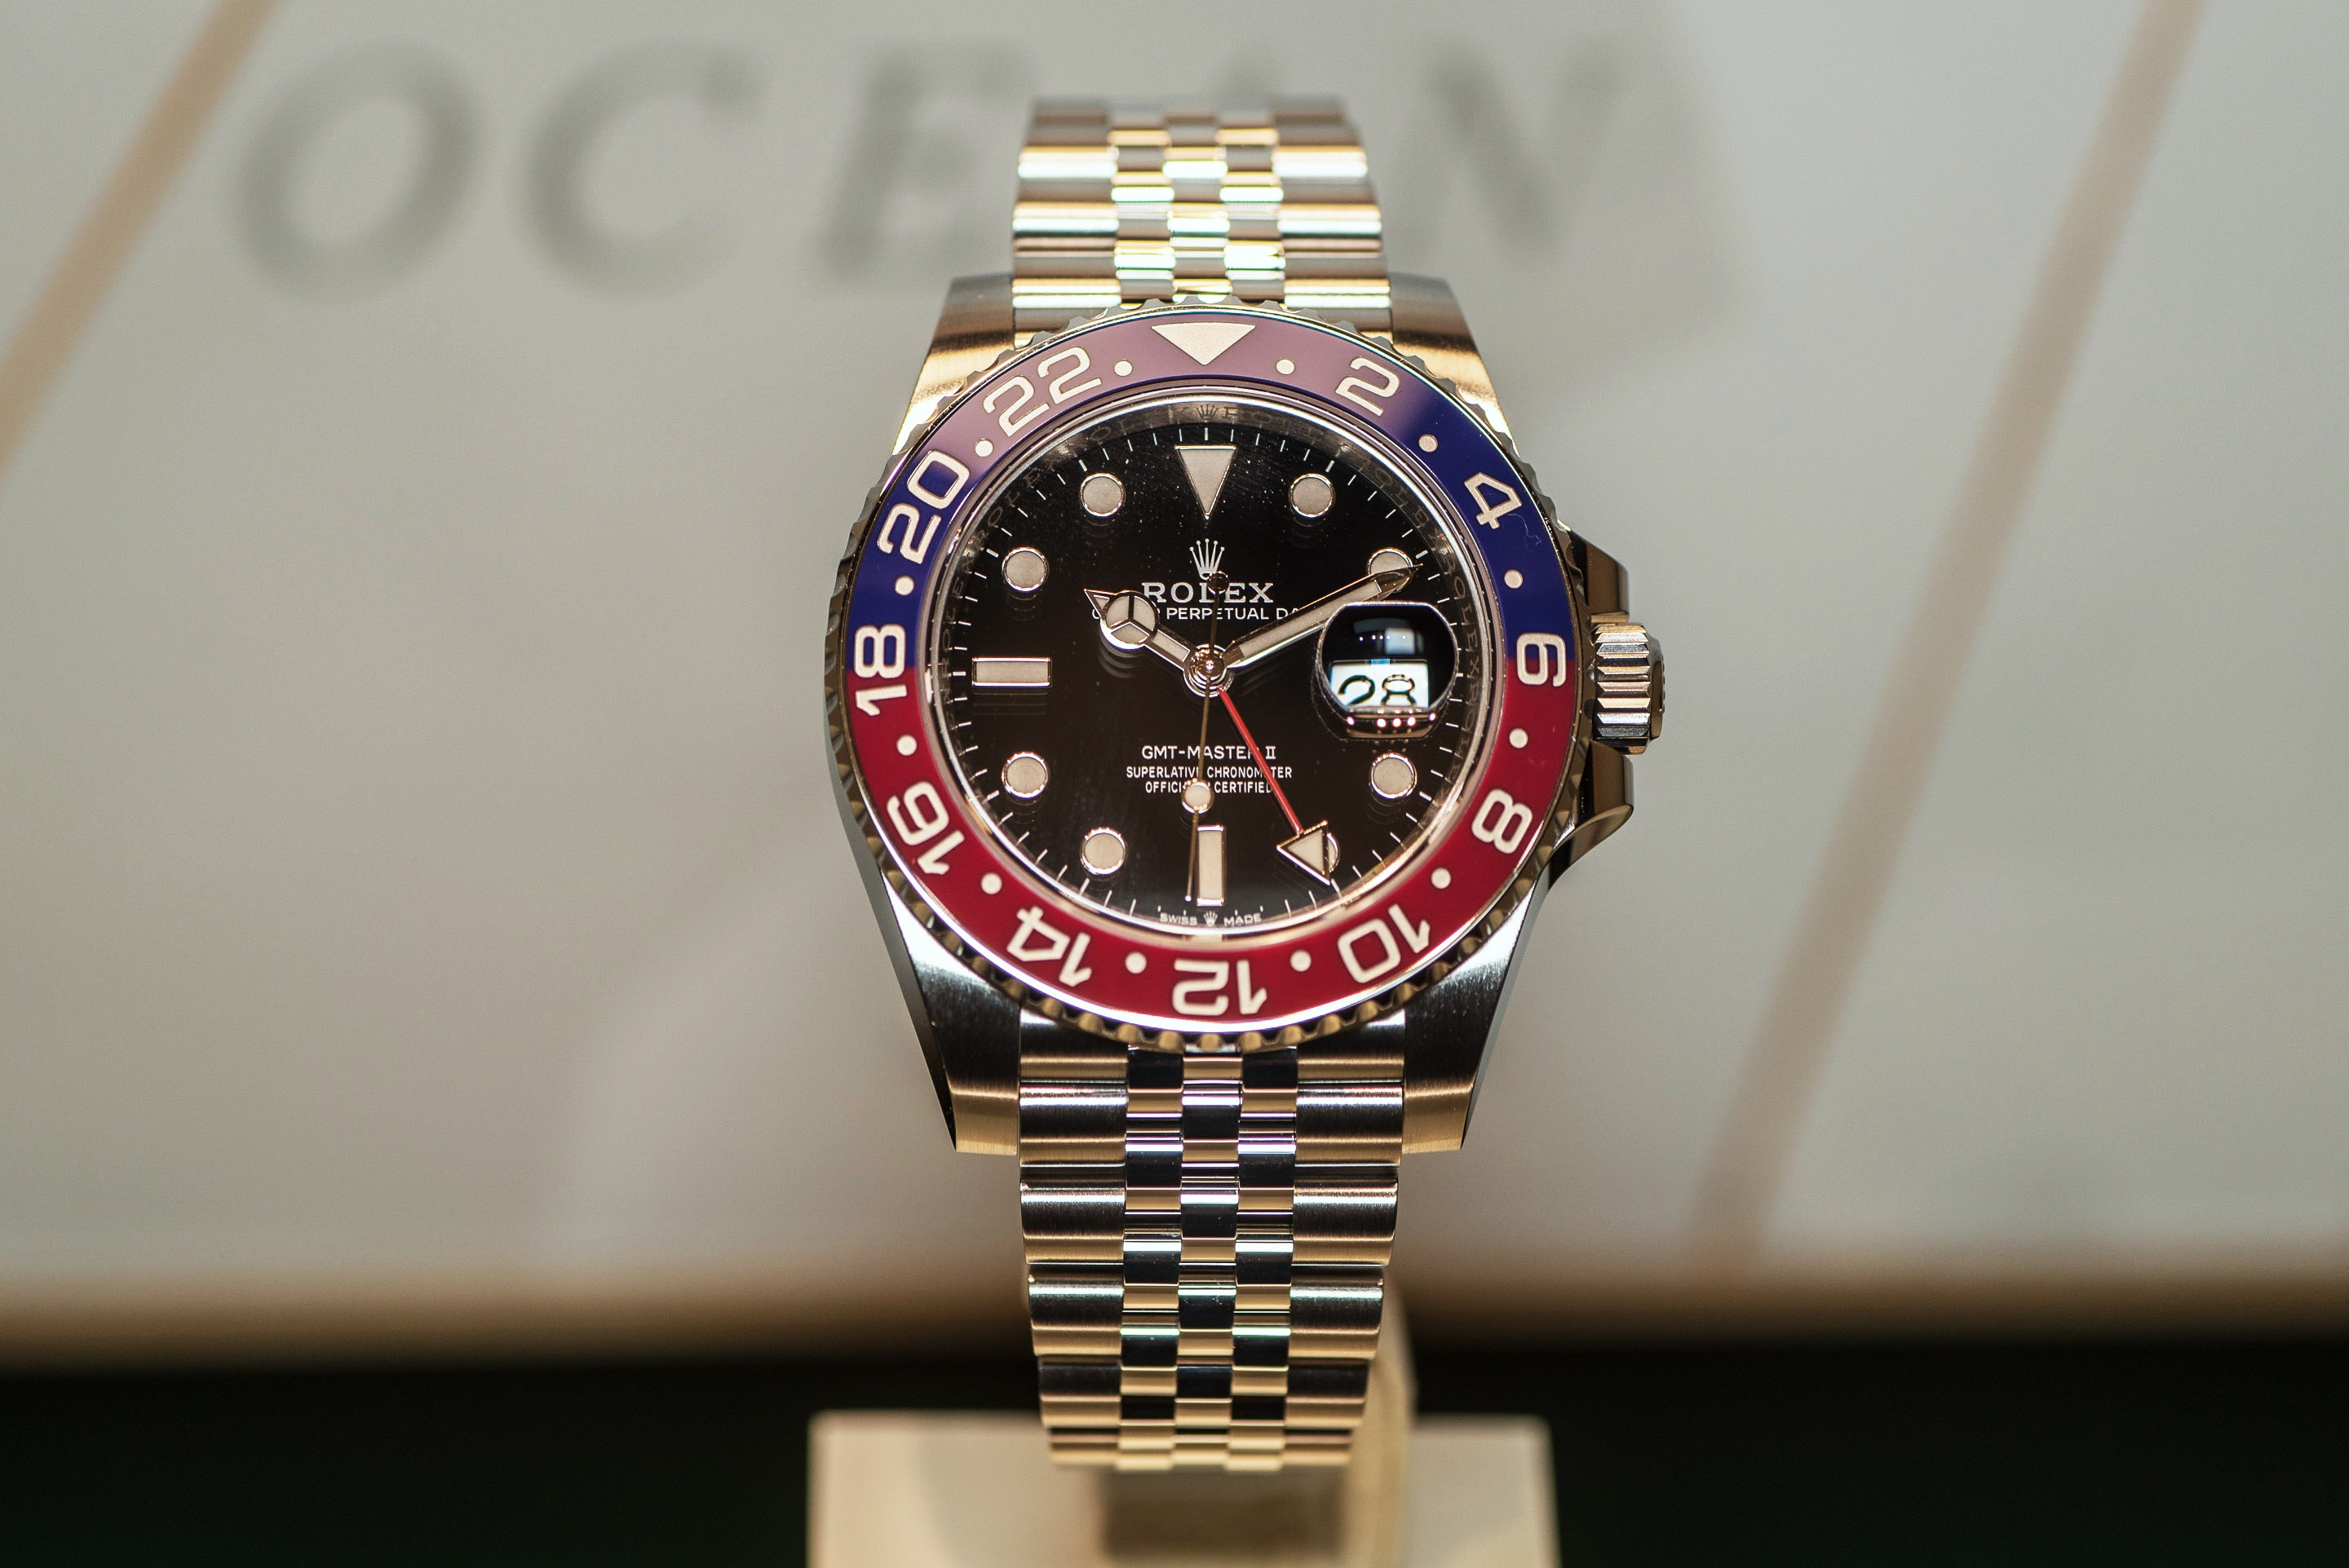 Baselworld 2018: The Rolex GMT-Master II Pepsi in stainless steel - Does it deliver?